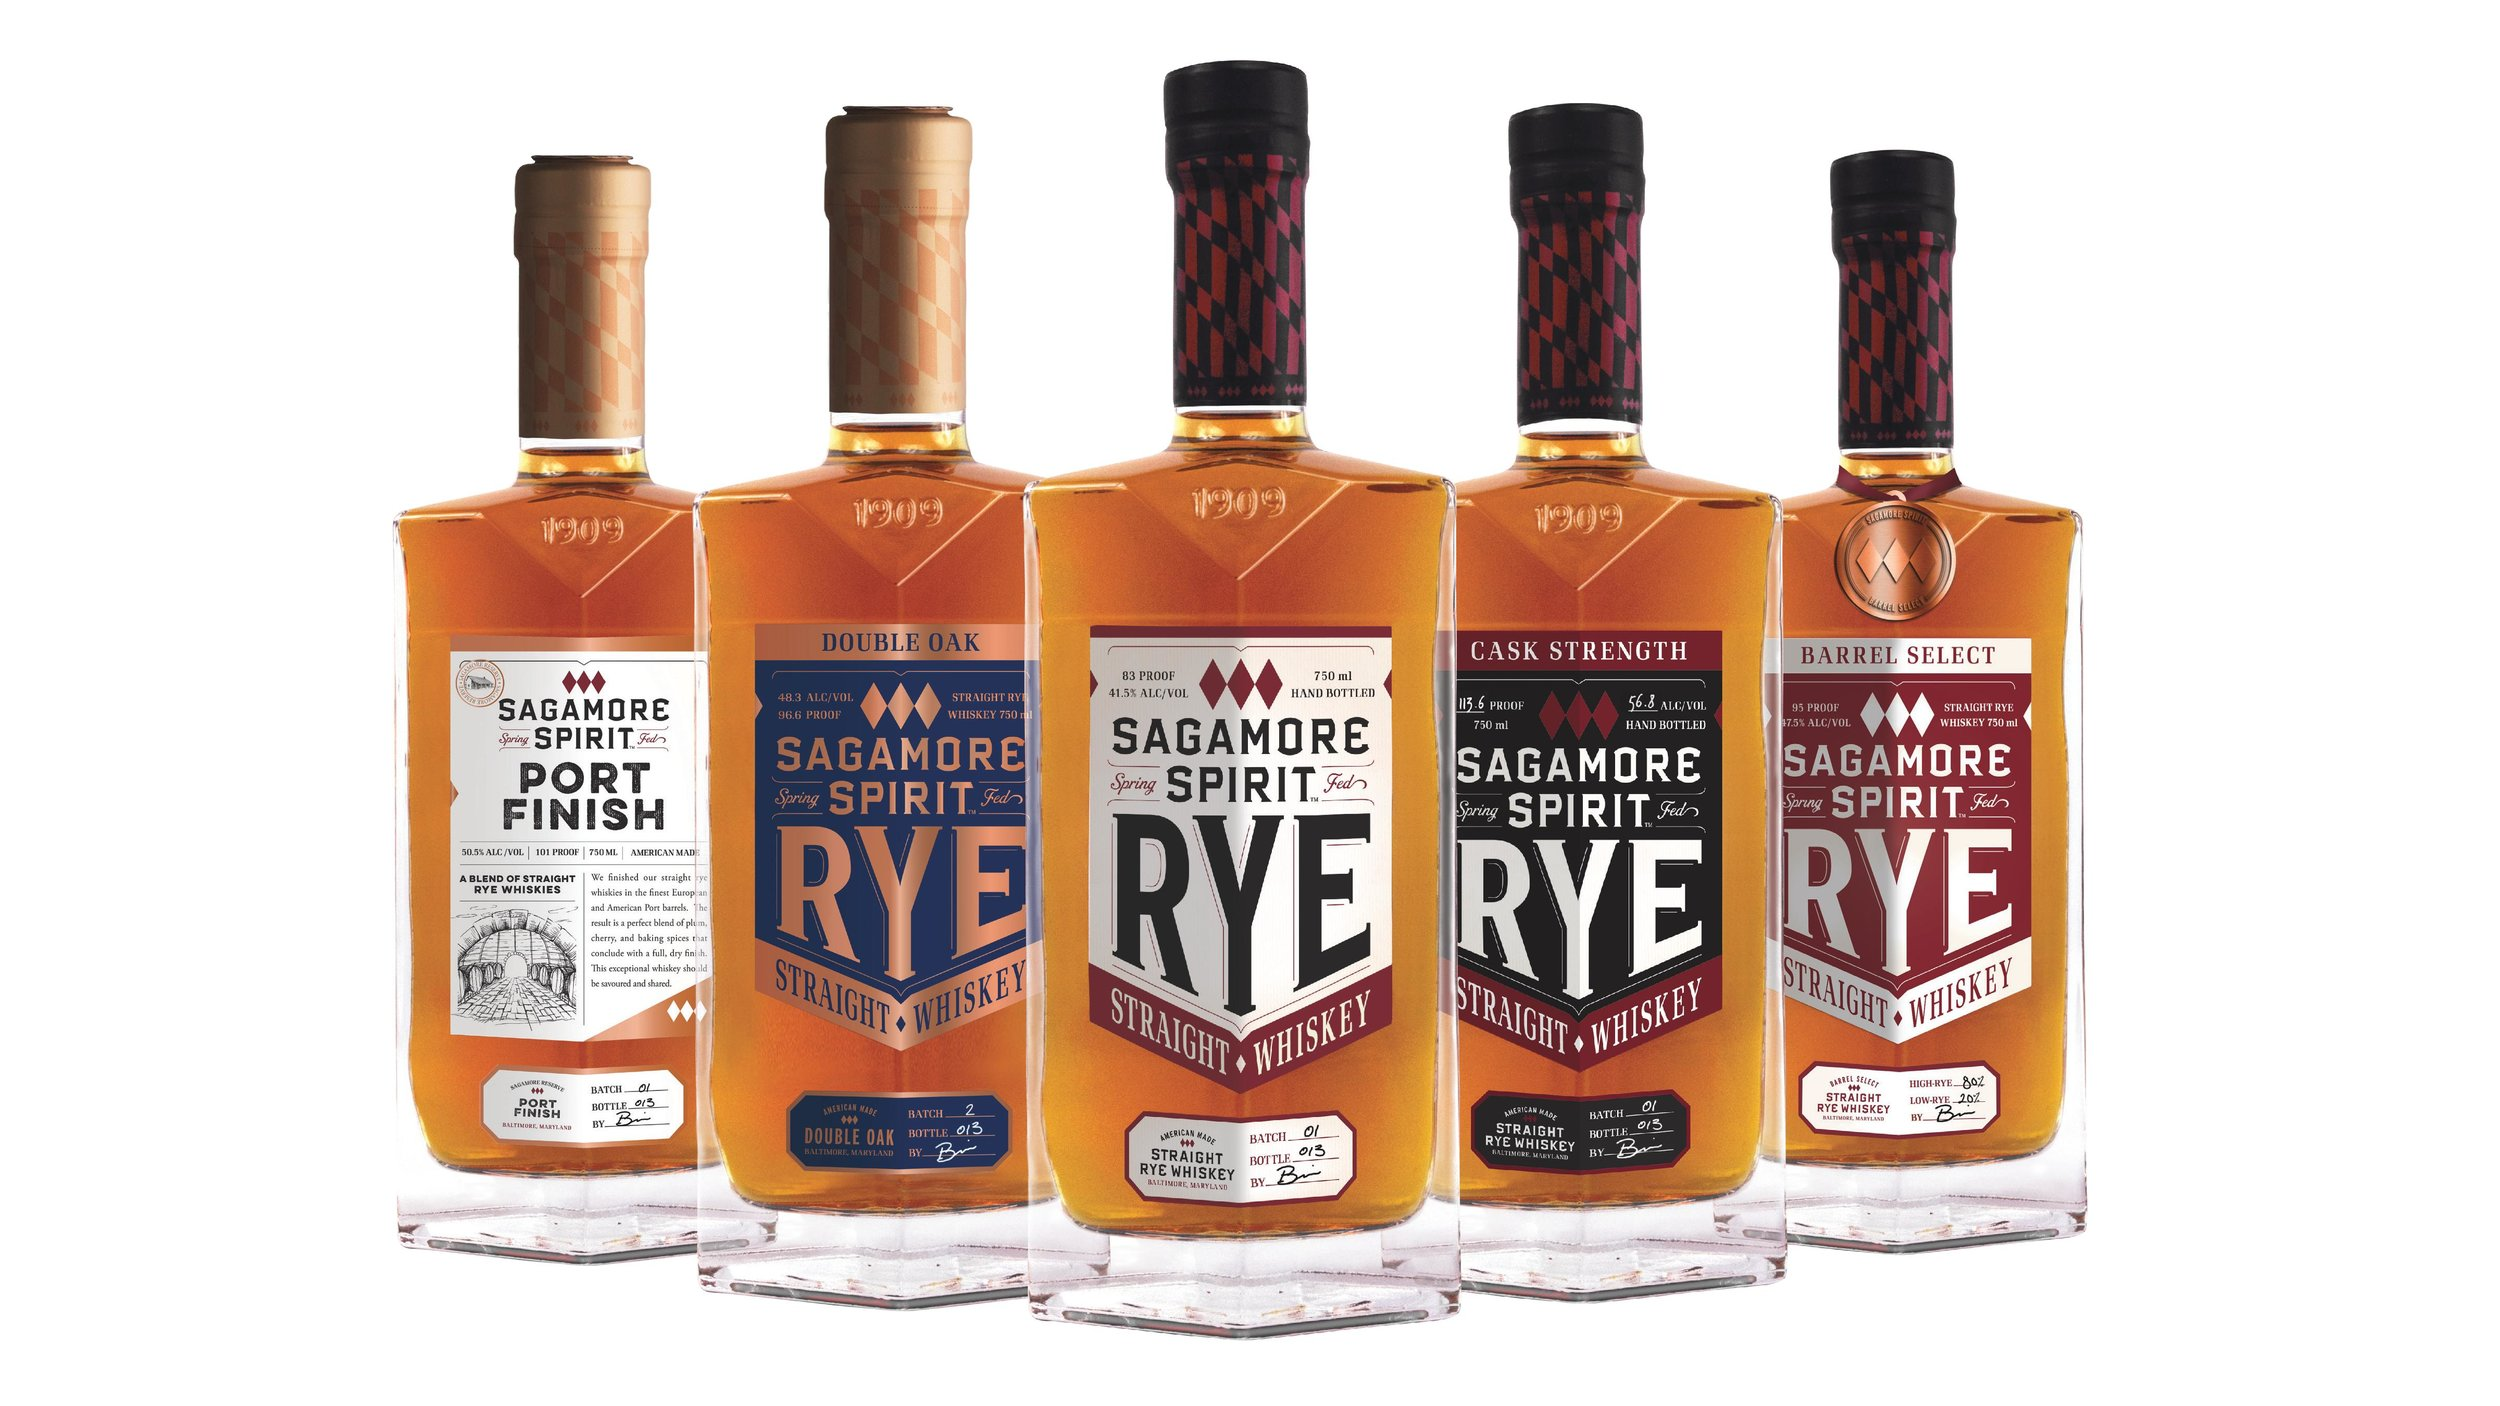 Bottle-Lineup 2019-04-18 17_08_35-page-001.jpg